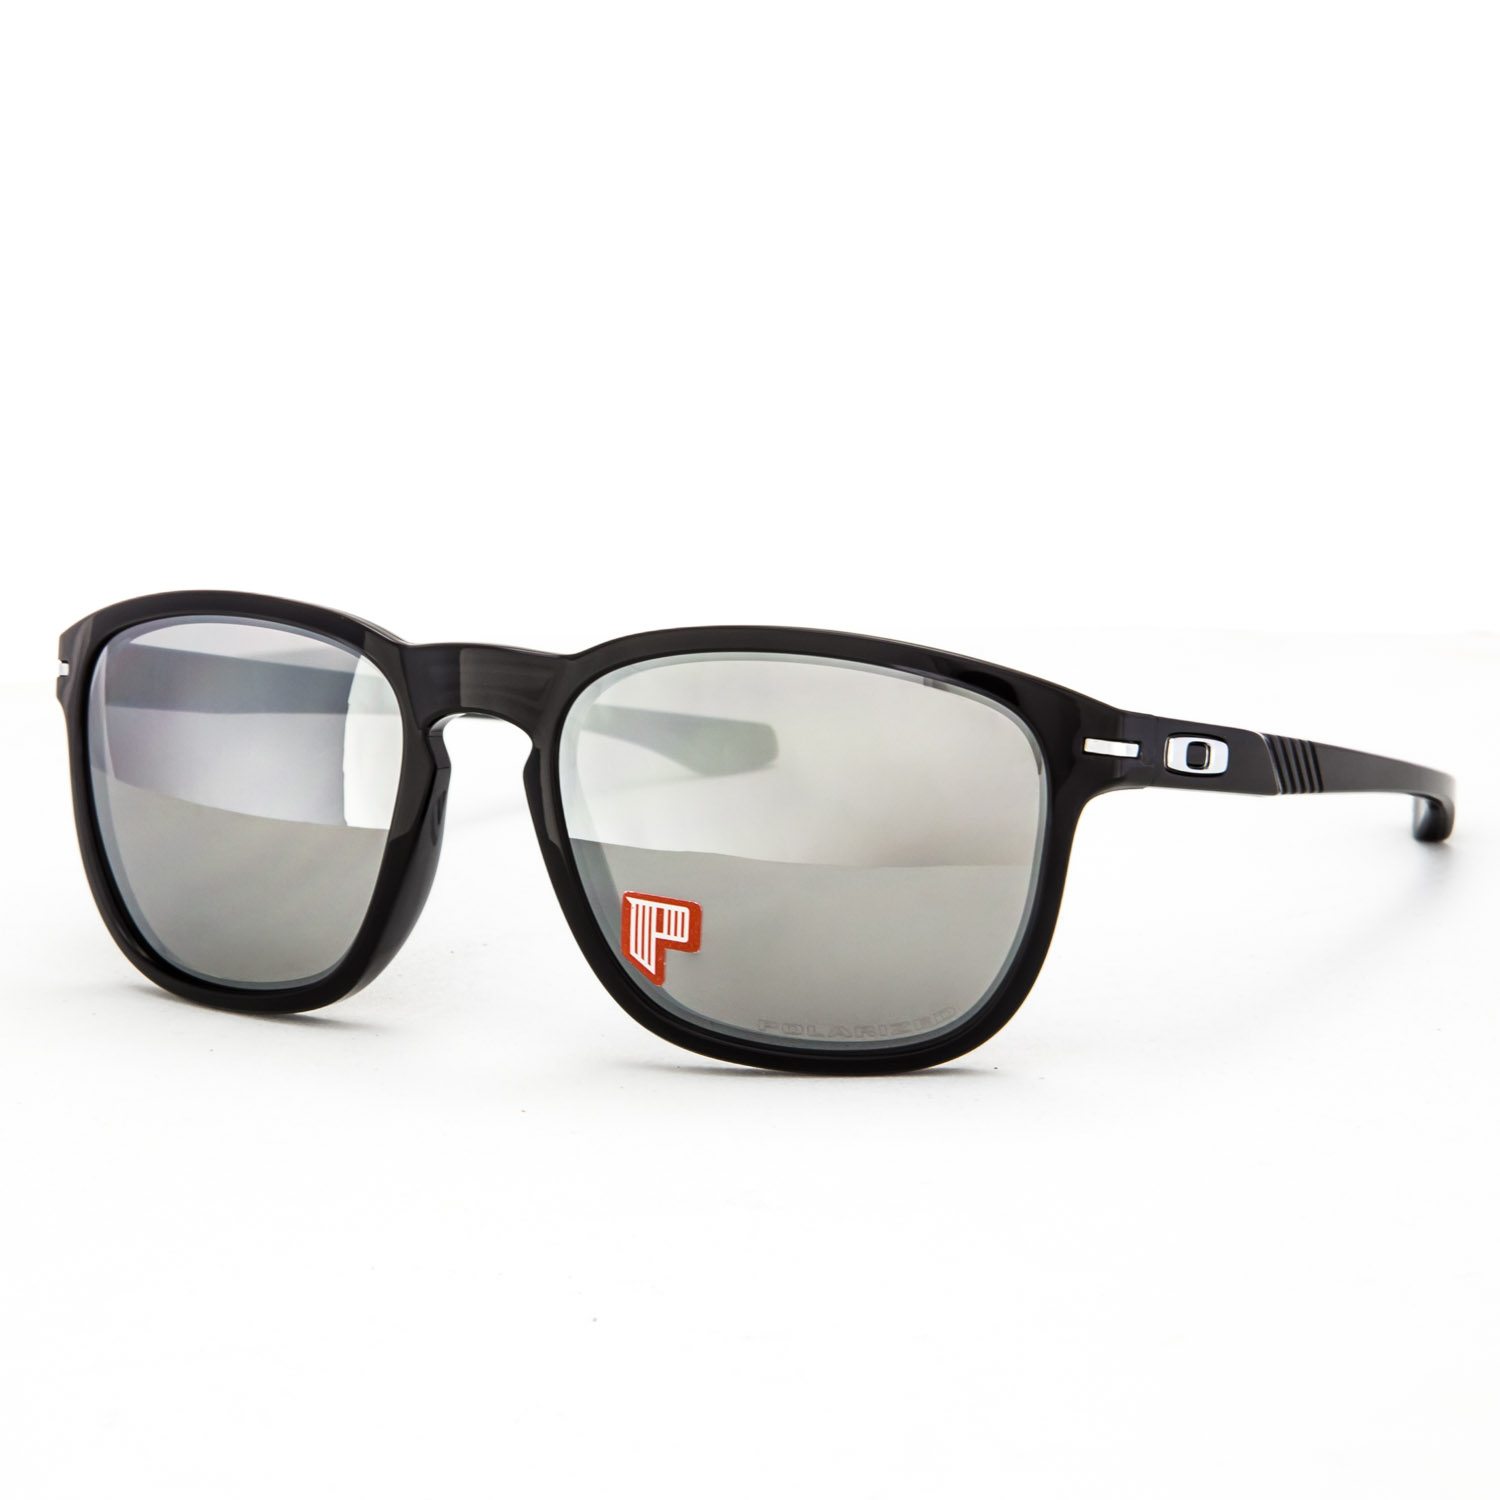 1670d257b7 Details about Oakley Enduro Sunglasses Limited Ink Collection Black Chrome  Mirrored Polarized